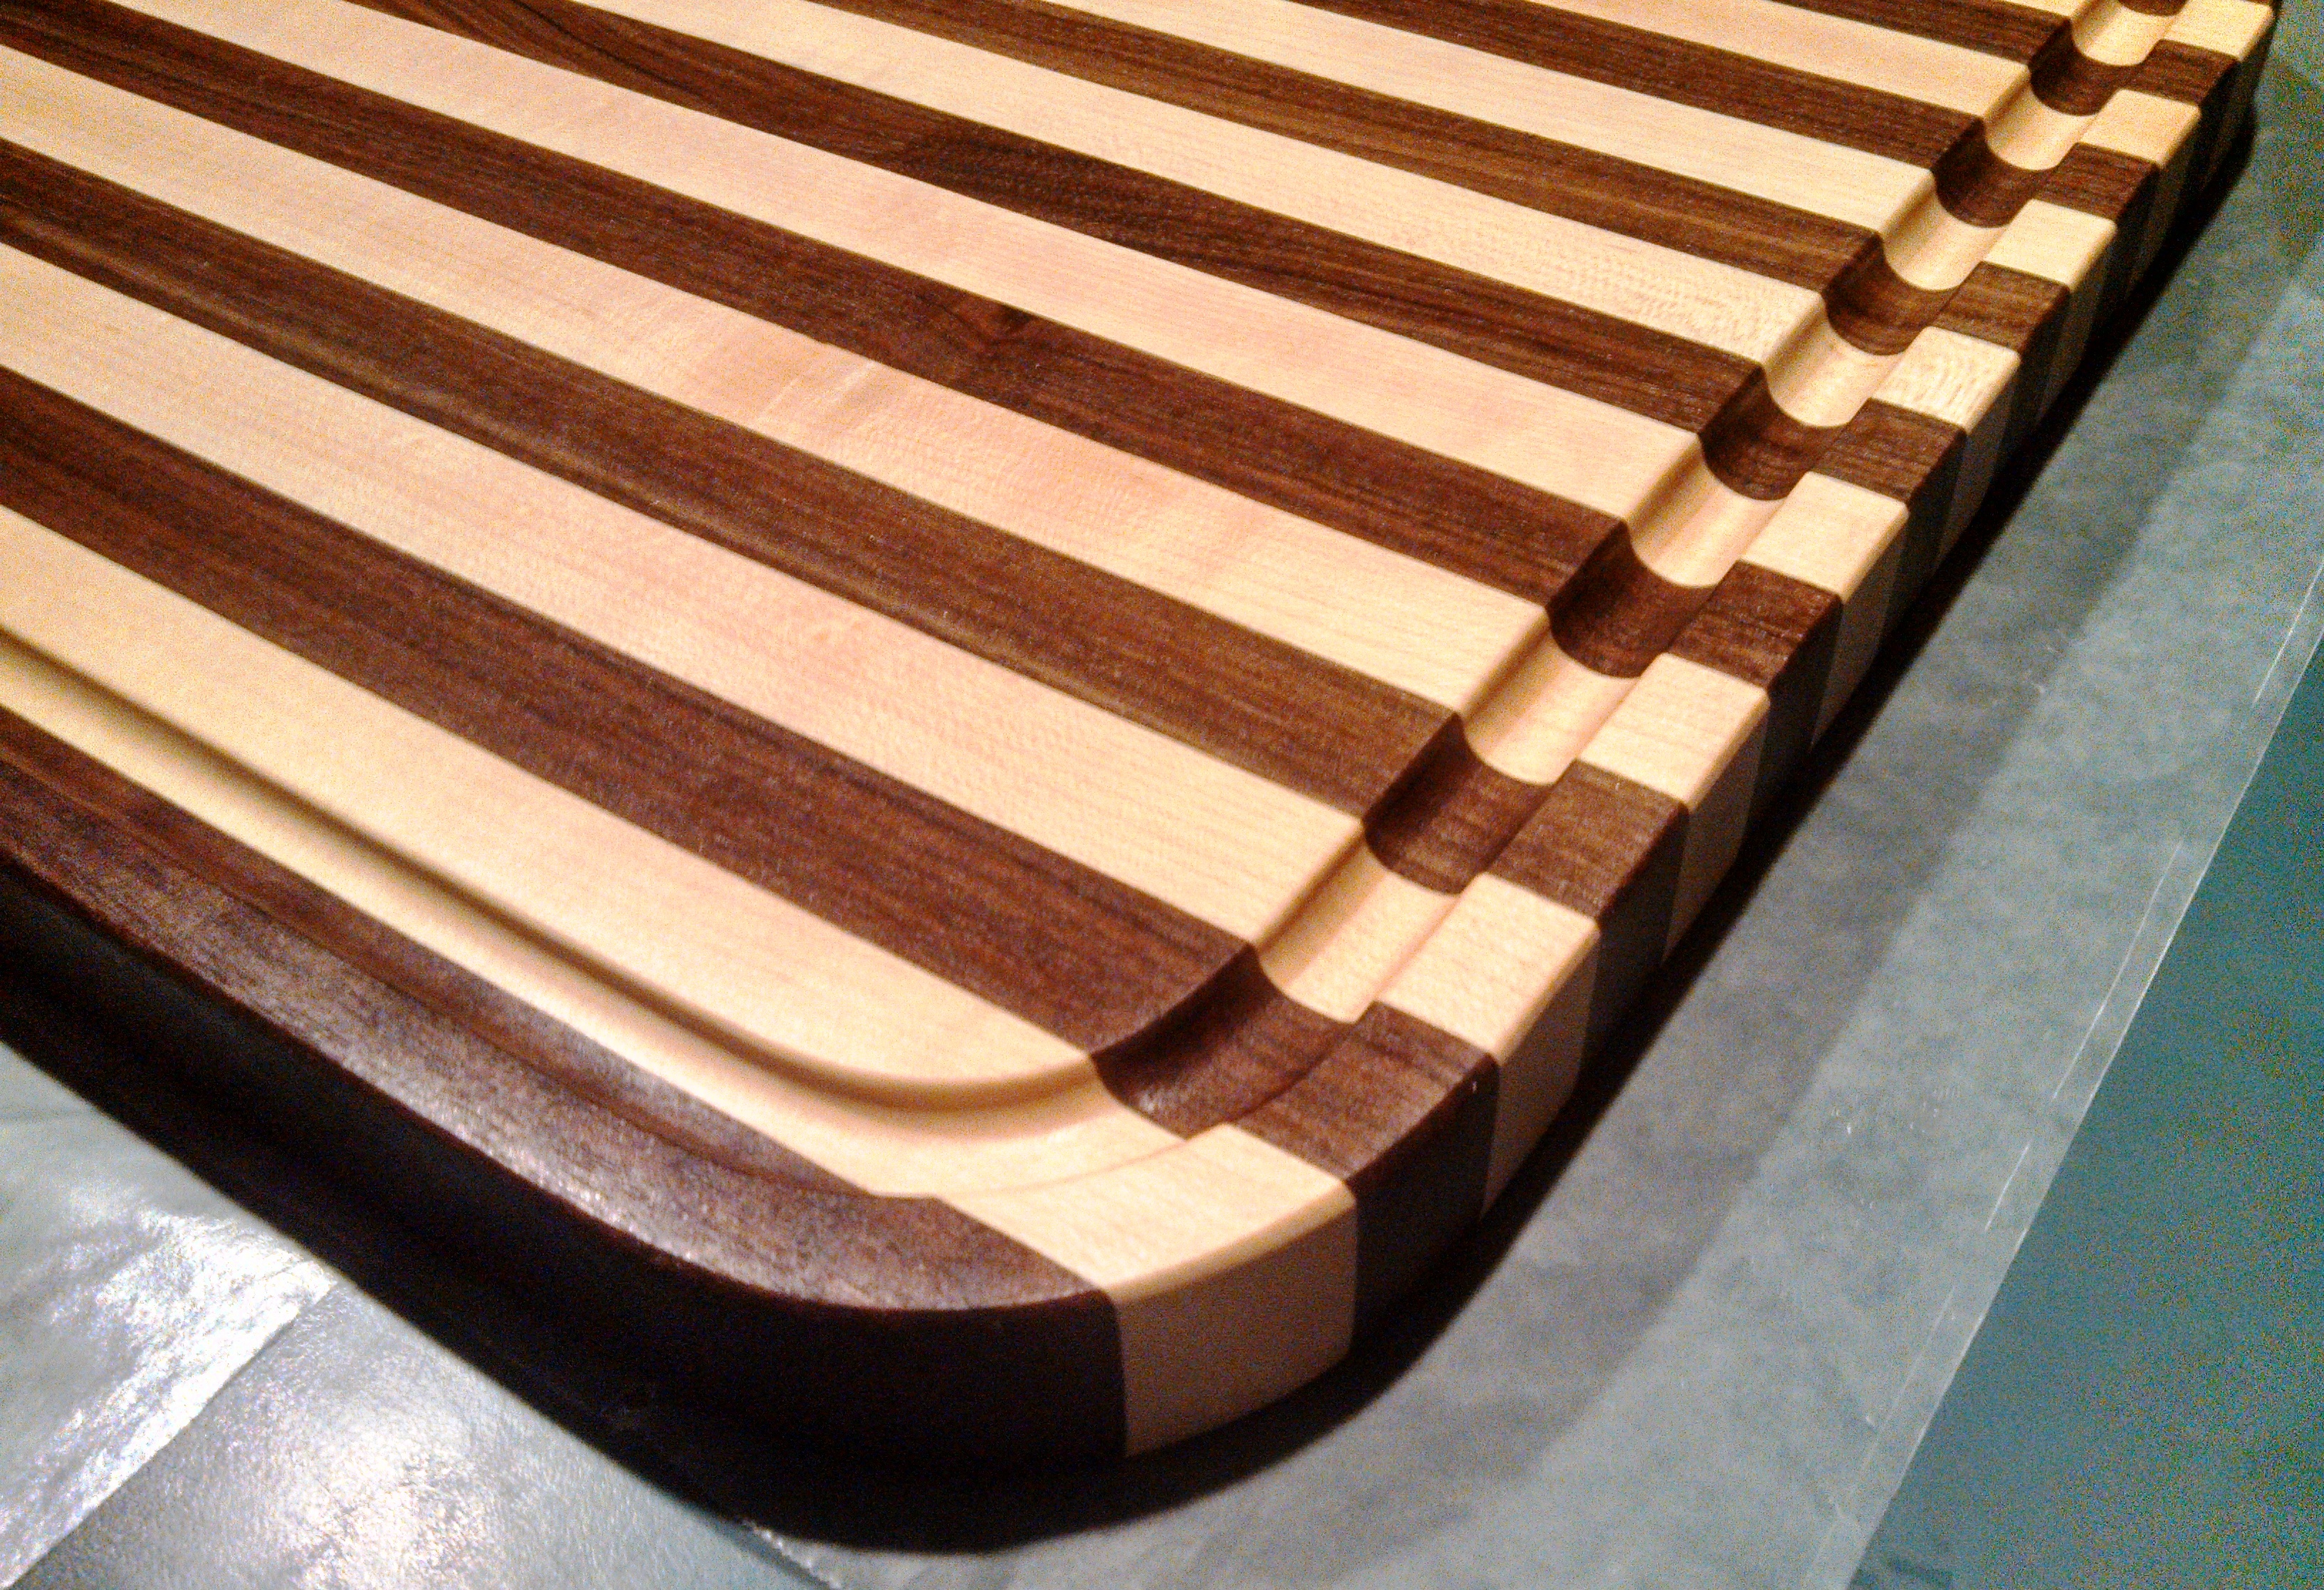 Top 5 cutting board designs of 2015 creative woodworking for Cutting board designs